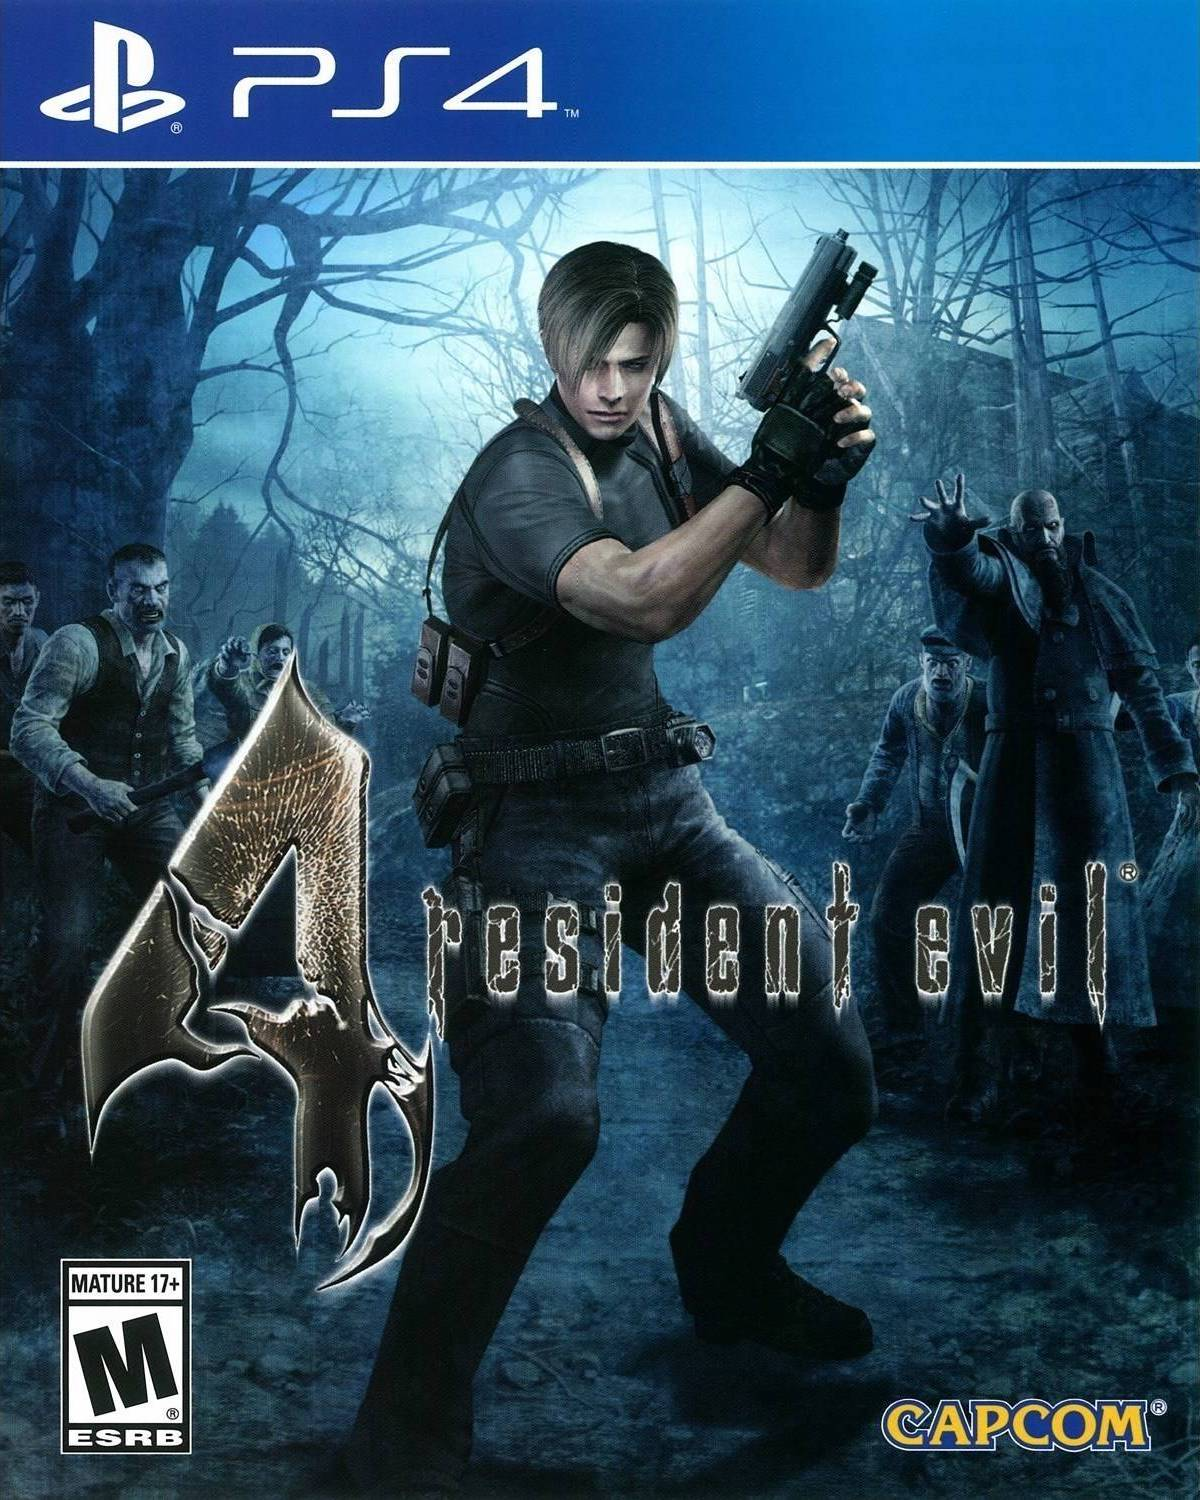 RE4 PS4 cover.jpg